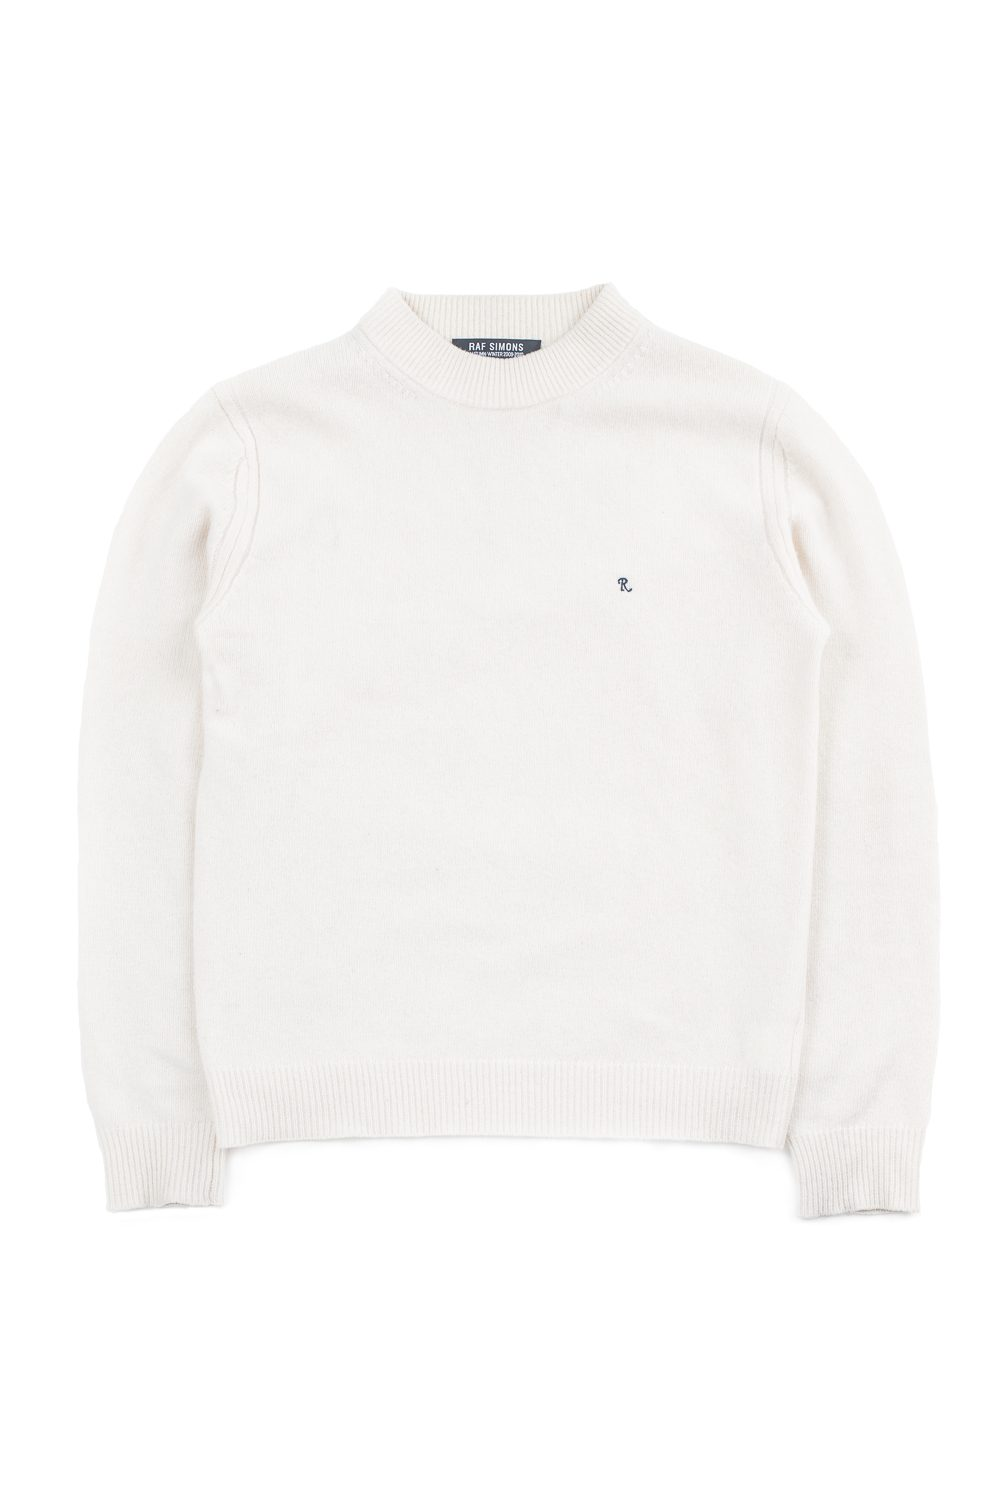 Fw09 Moc Neck Embroidered R Logo Knit